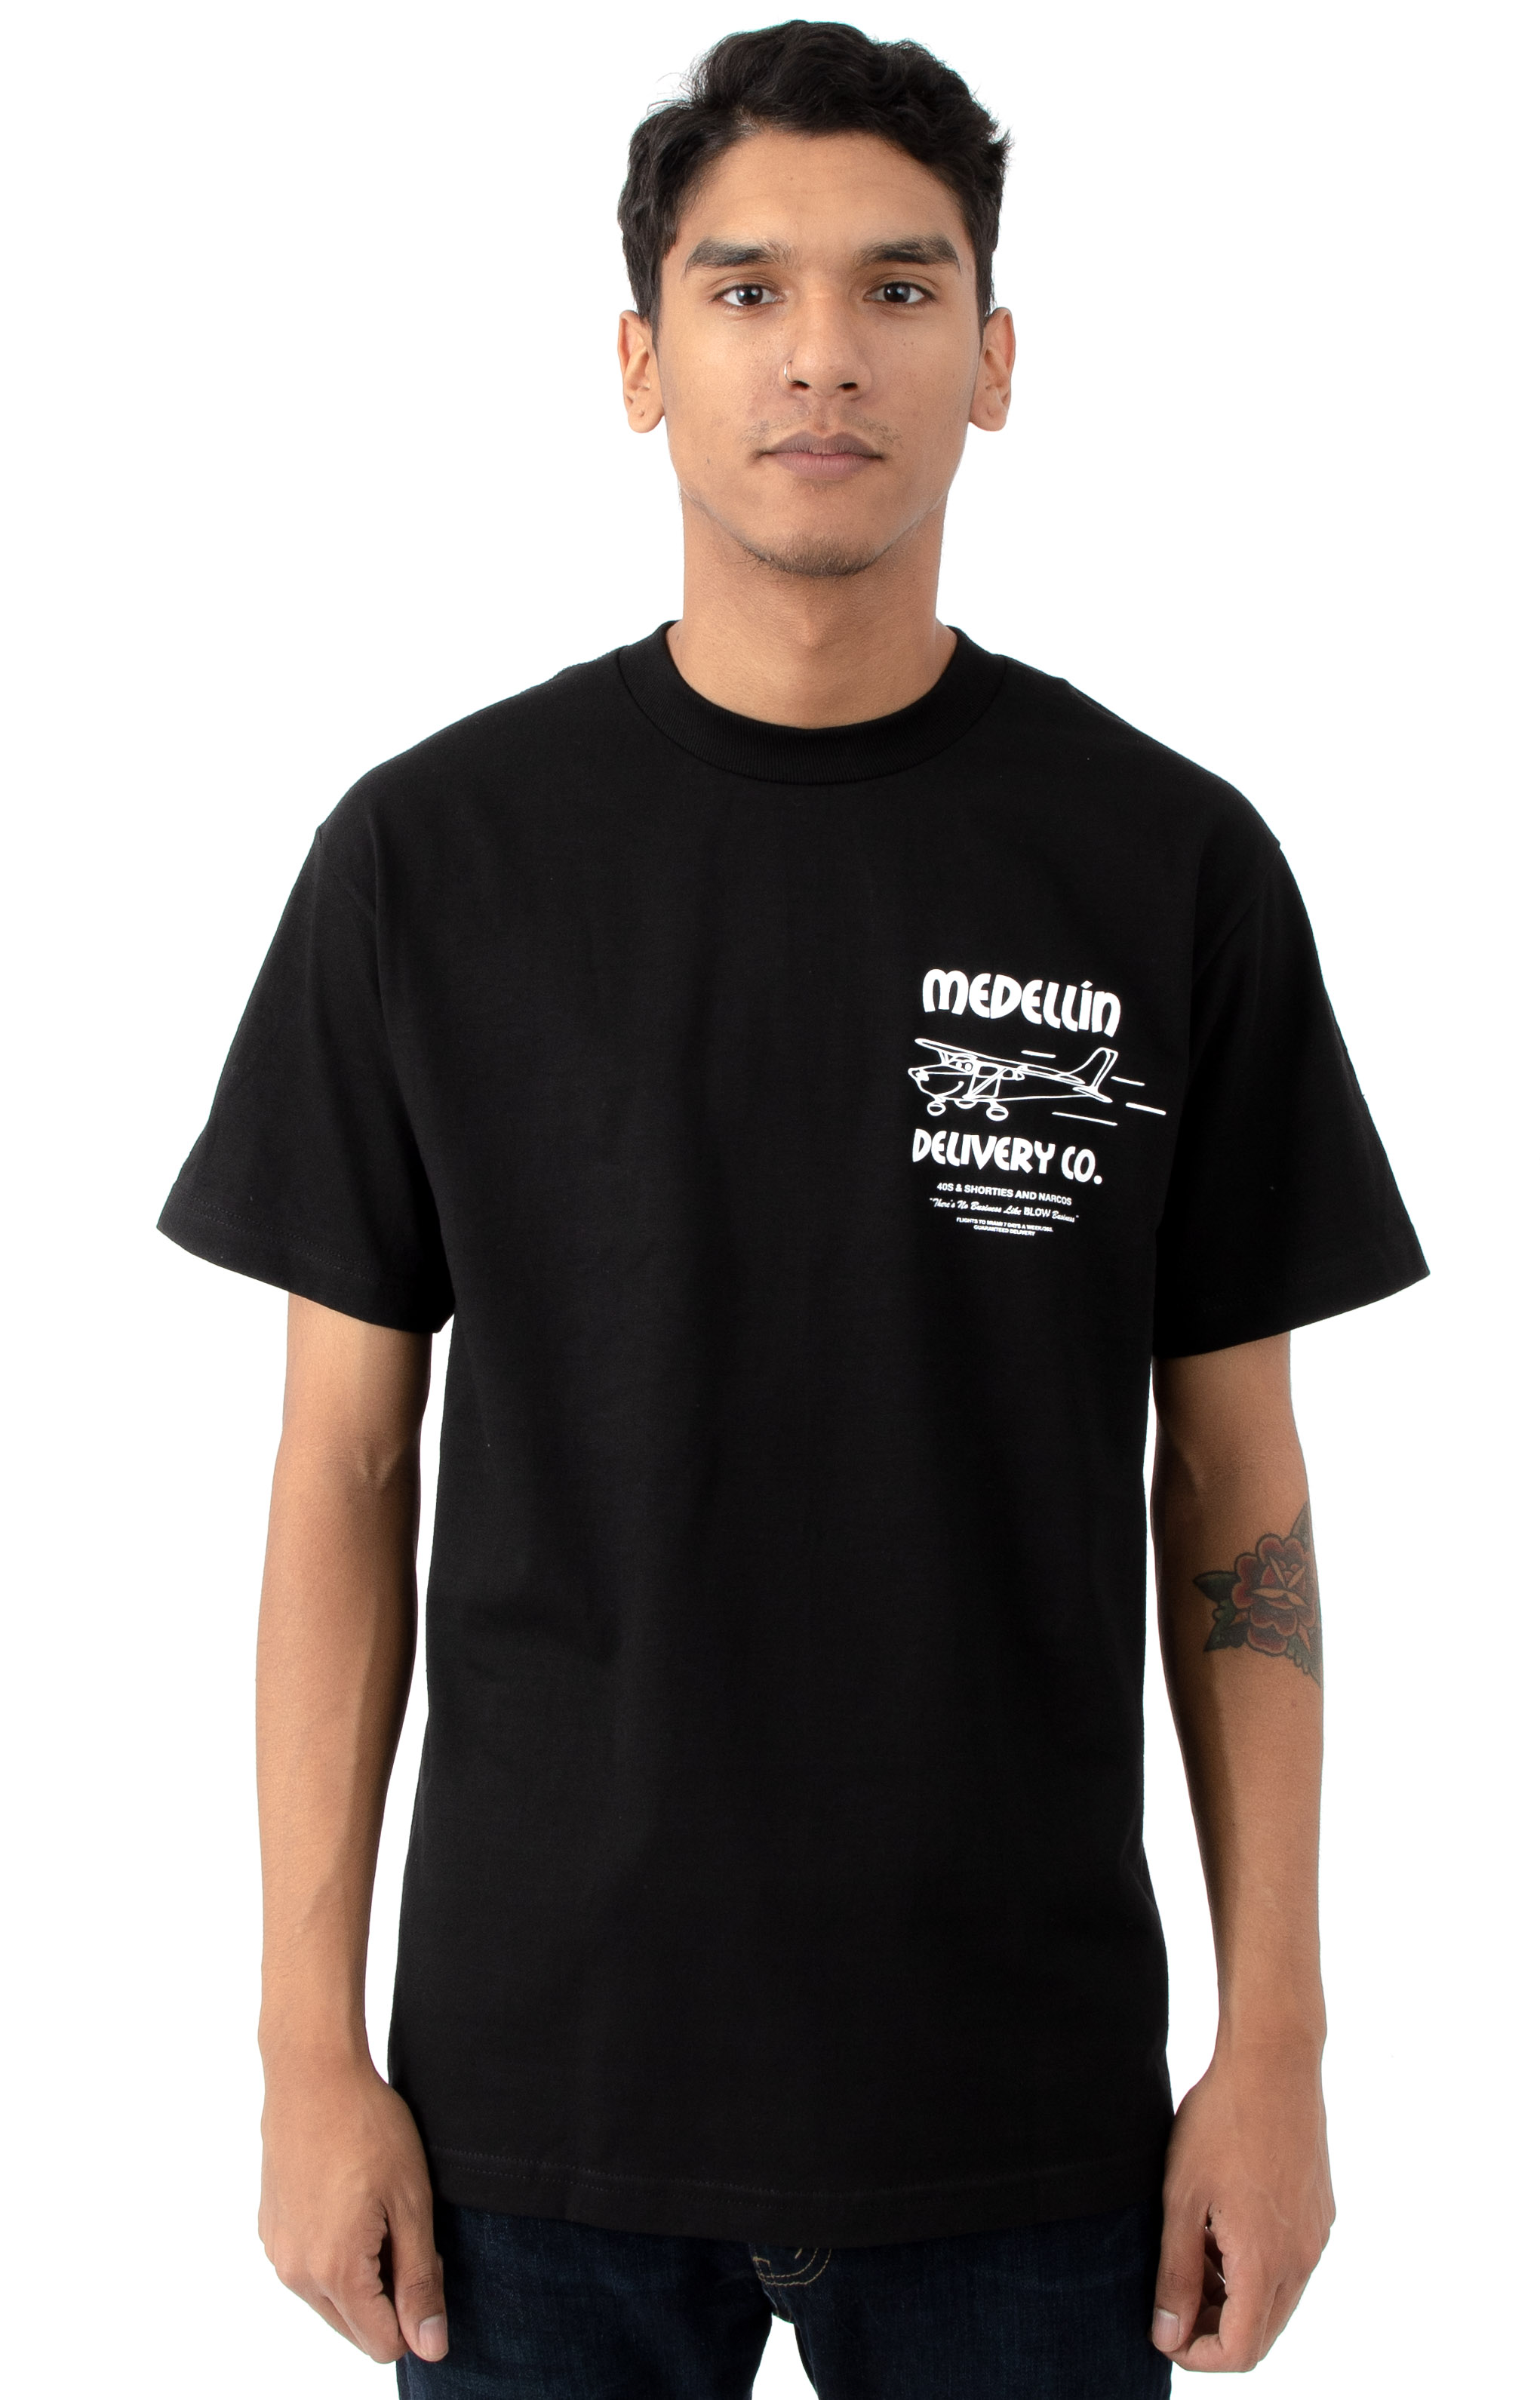 Delivery T-Shirt - Black 2